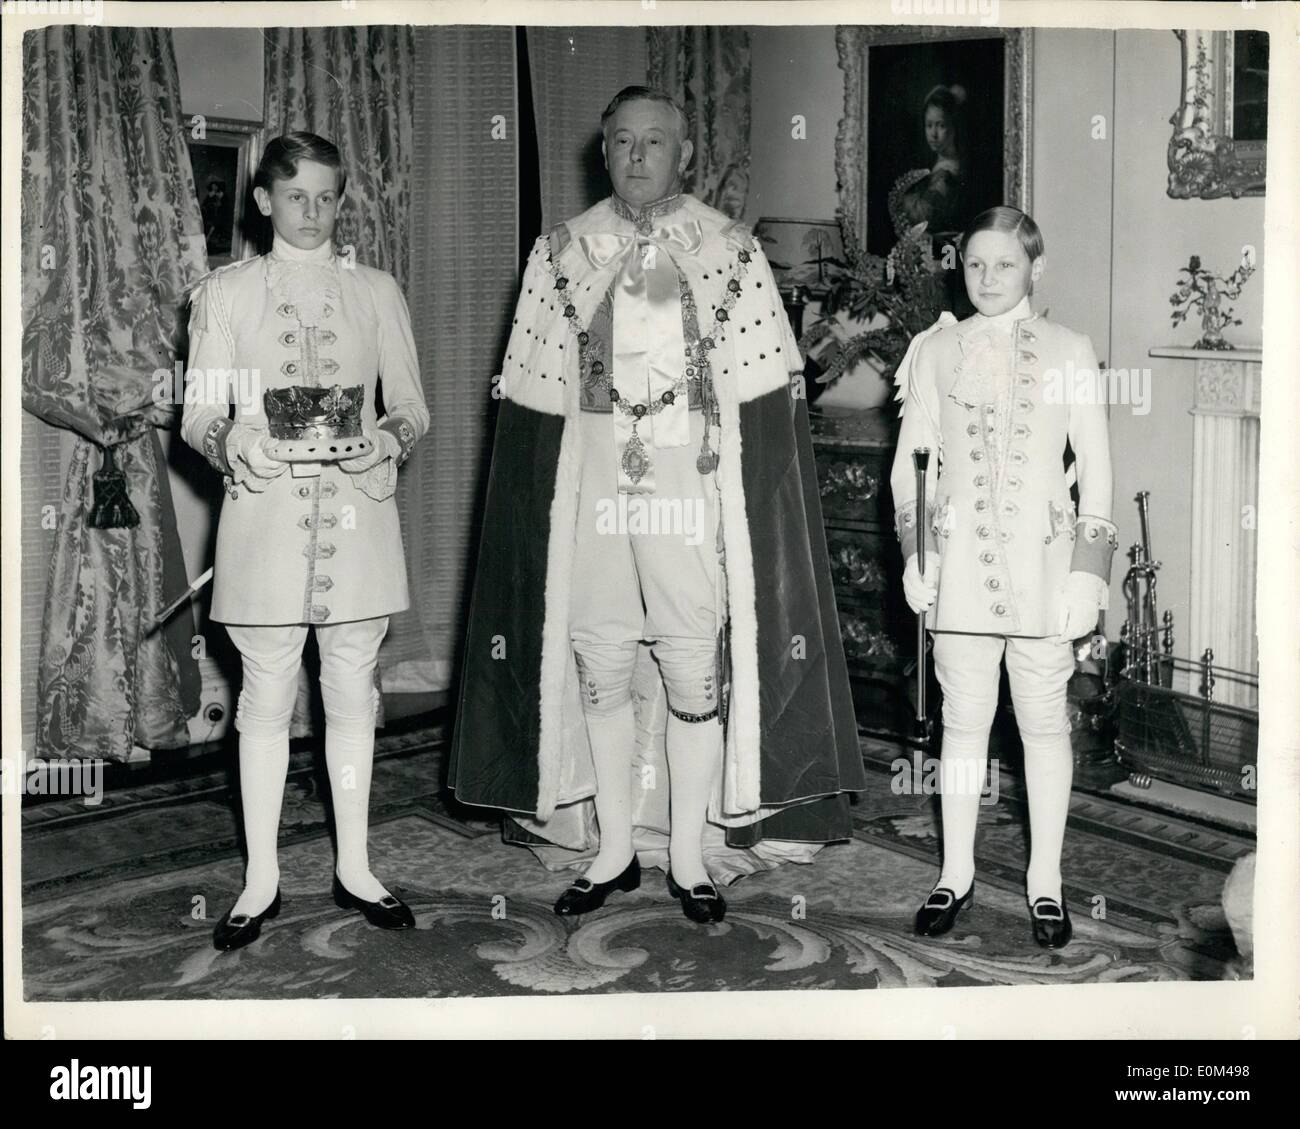 May 05, 1953 - Duke of Norfolk in his coronation Robes.: The man with the biggest job in Britain today, the man planner behind the coronation preparations, the Earl Marshal, the duke of Norfolk, photographed last night wearing his own coronation day robes, with him are his page-boys, James Drummond (left), holding the Duke's coronet, and (right), Duncan da Vidson with the earl marshal's staff. - Stock Image